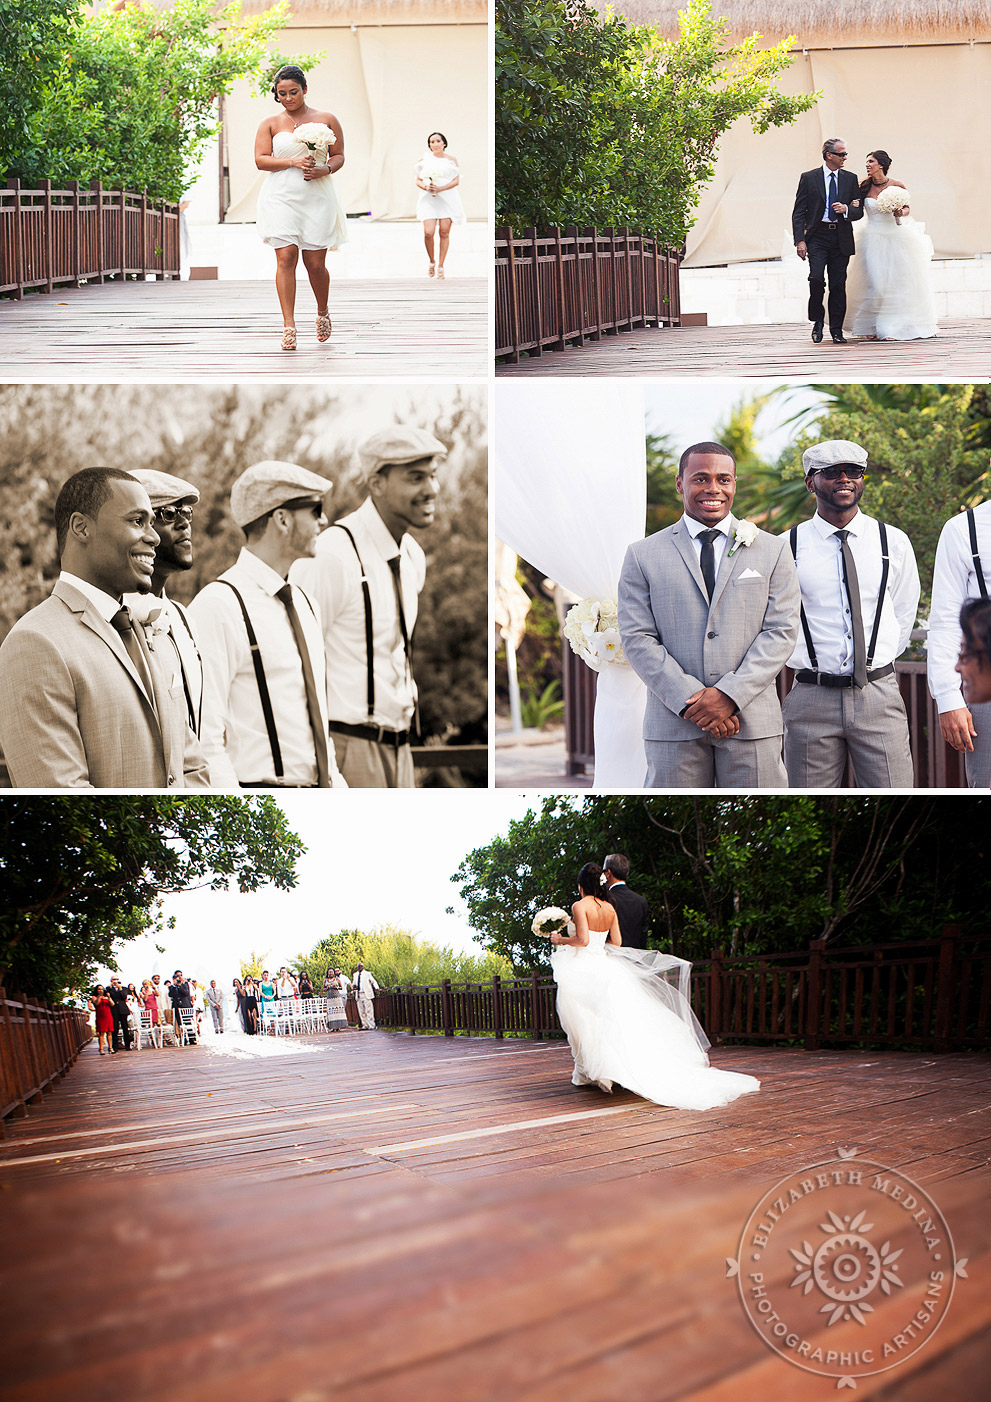 2014_05_23_emedina_playa_799_007 Playa del Carmen Wedding Photography, Nathalie and Harold's Destination Wedding Photographs  03 15 2014